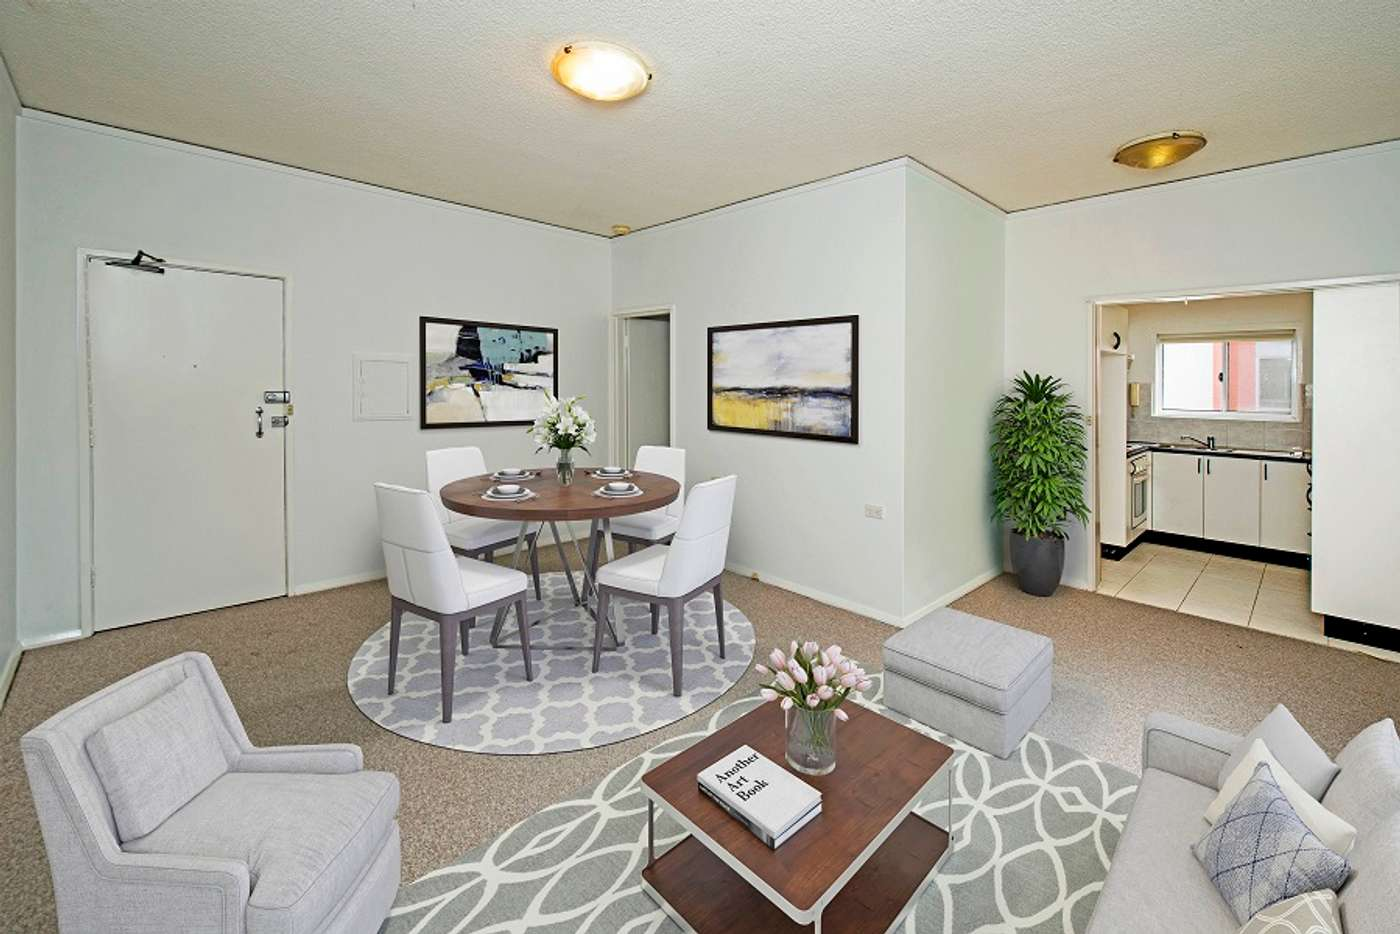 Main view of Homely apartment listing, 25 King Edward Street, Rockdale NSW 2216